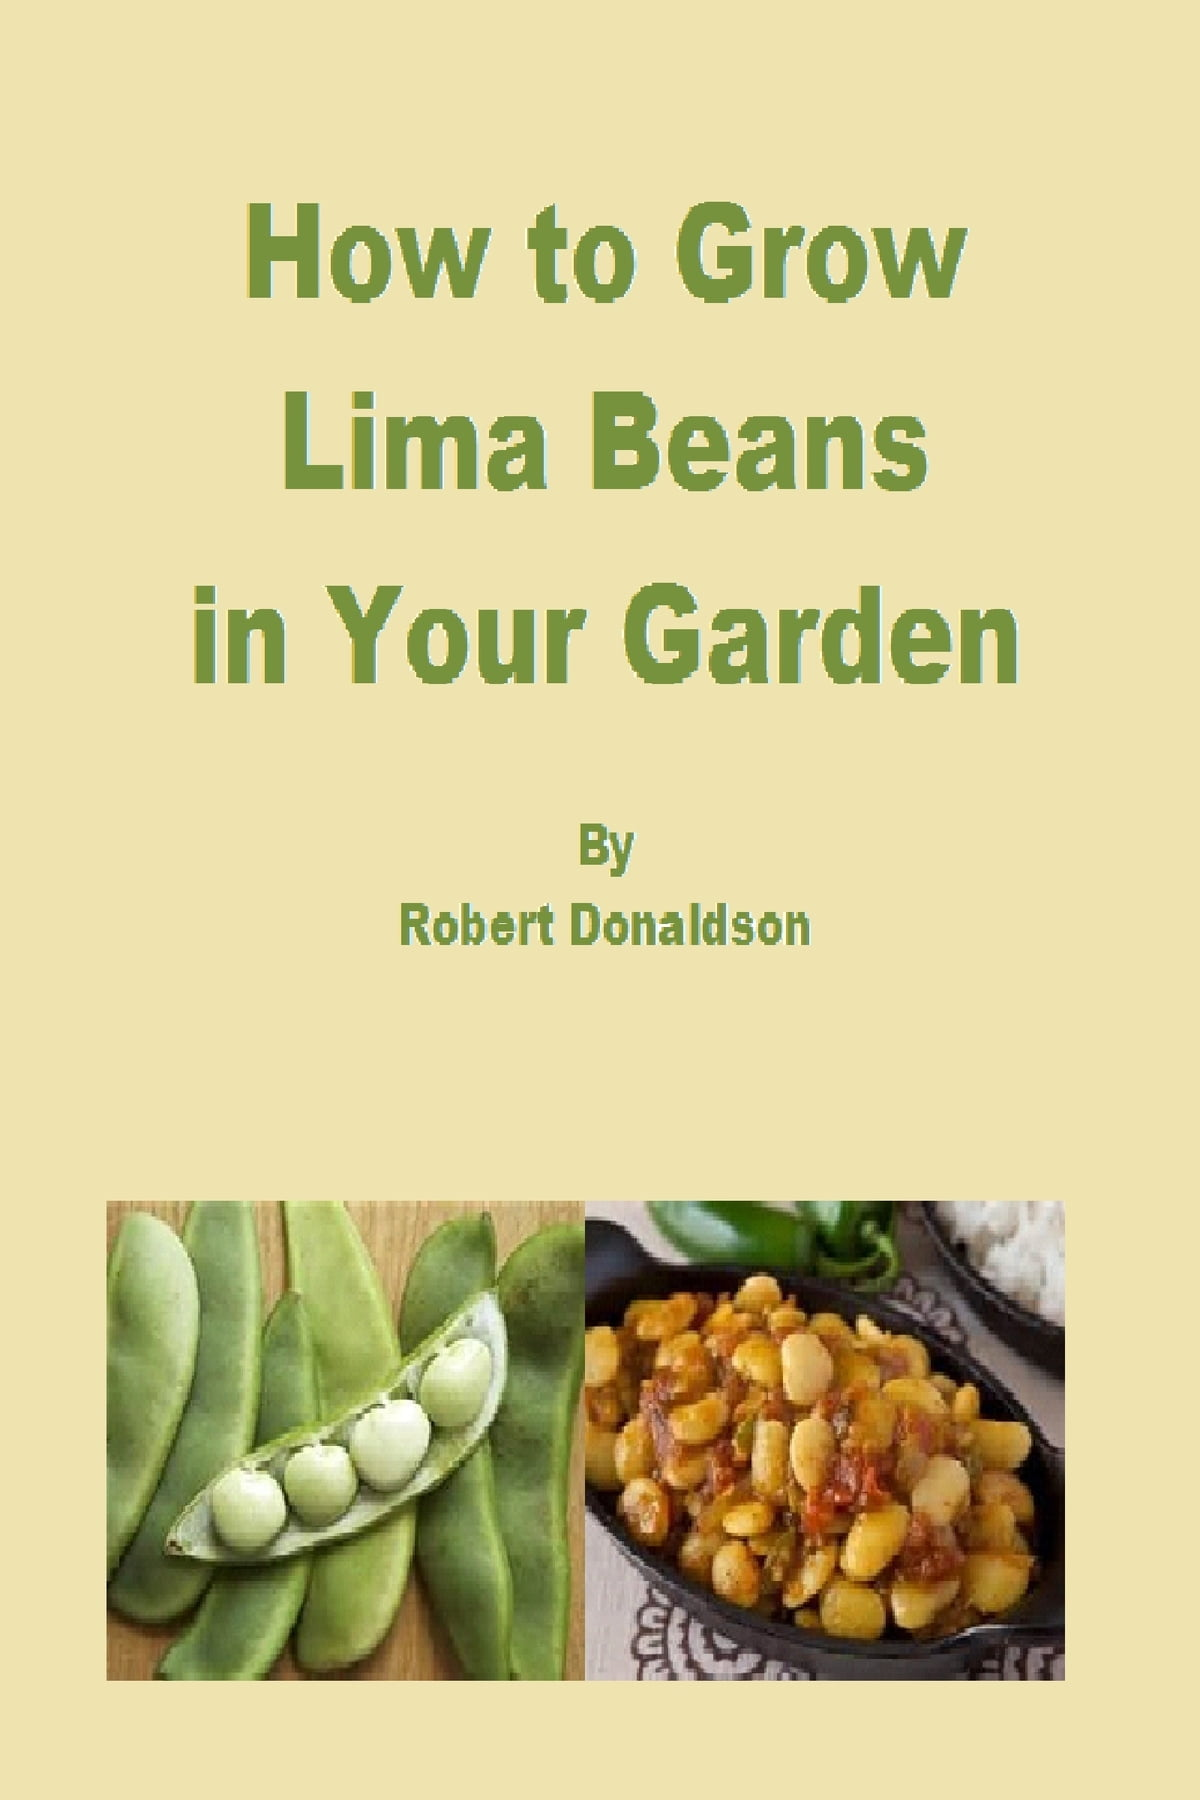 How To Grow Lima Beans In Your Garden Ebook By Robert